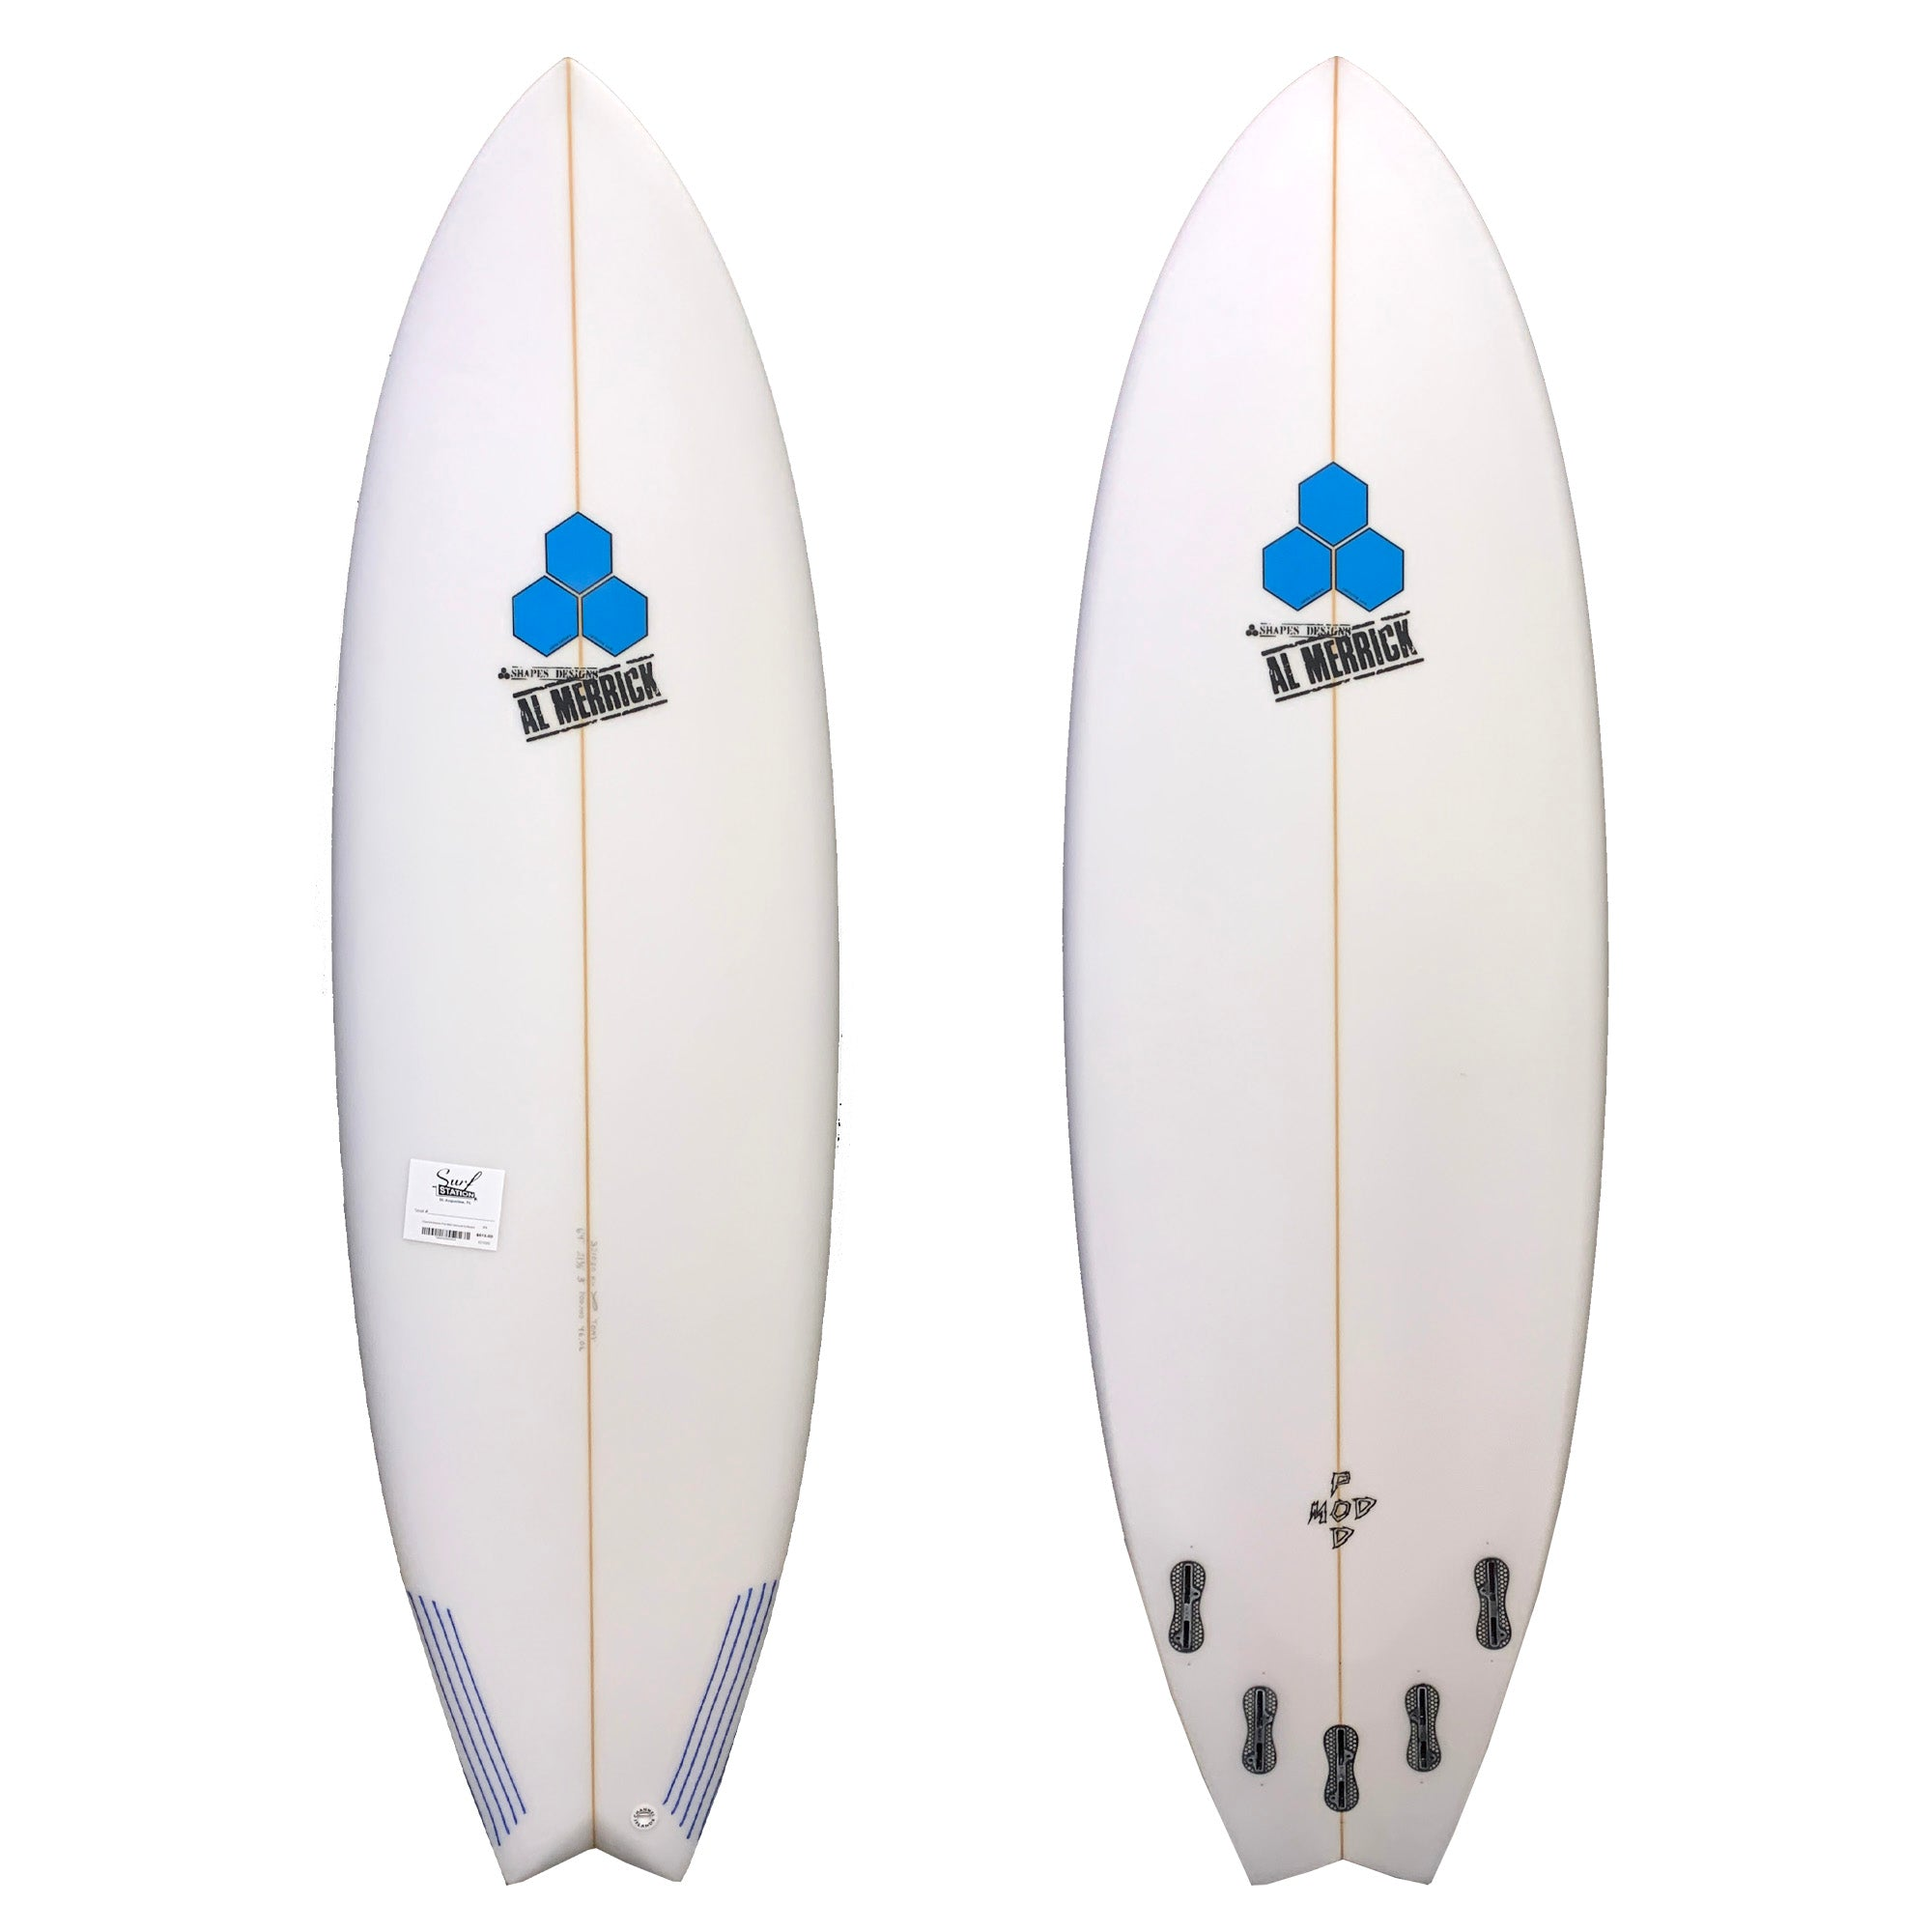 Channel Islands Pod Mod Discount Surfboard